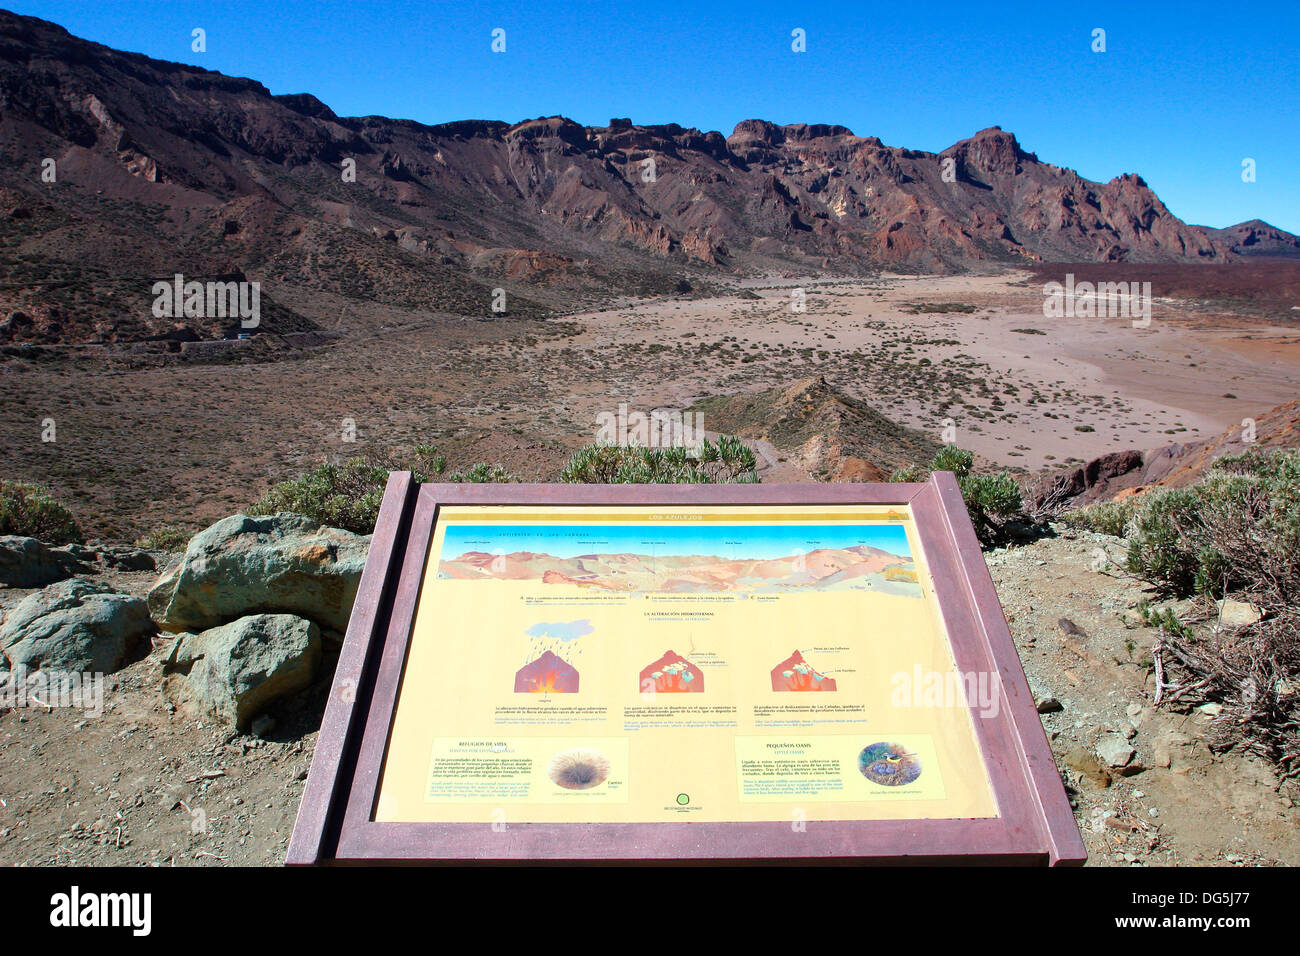 Teide National Park. Tenerife. Canary Islands. Spain - Stock Image